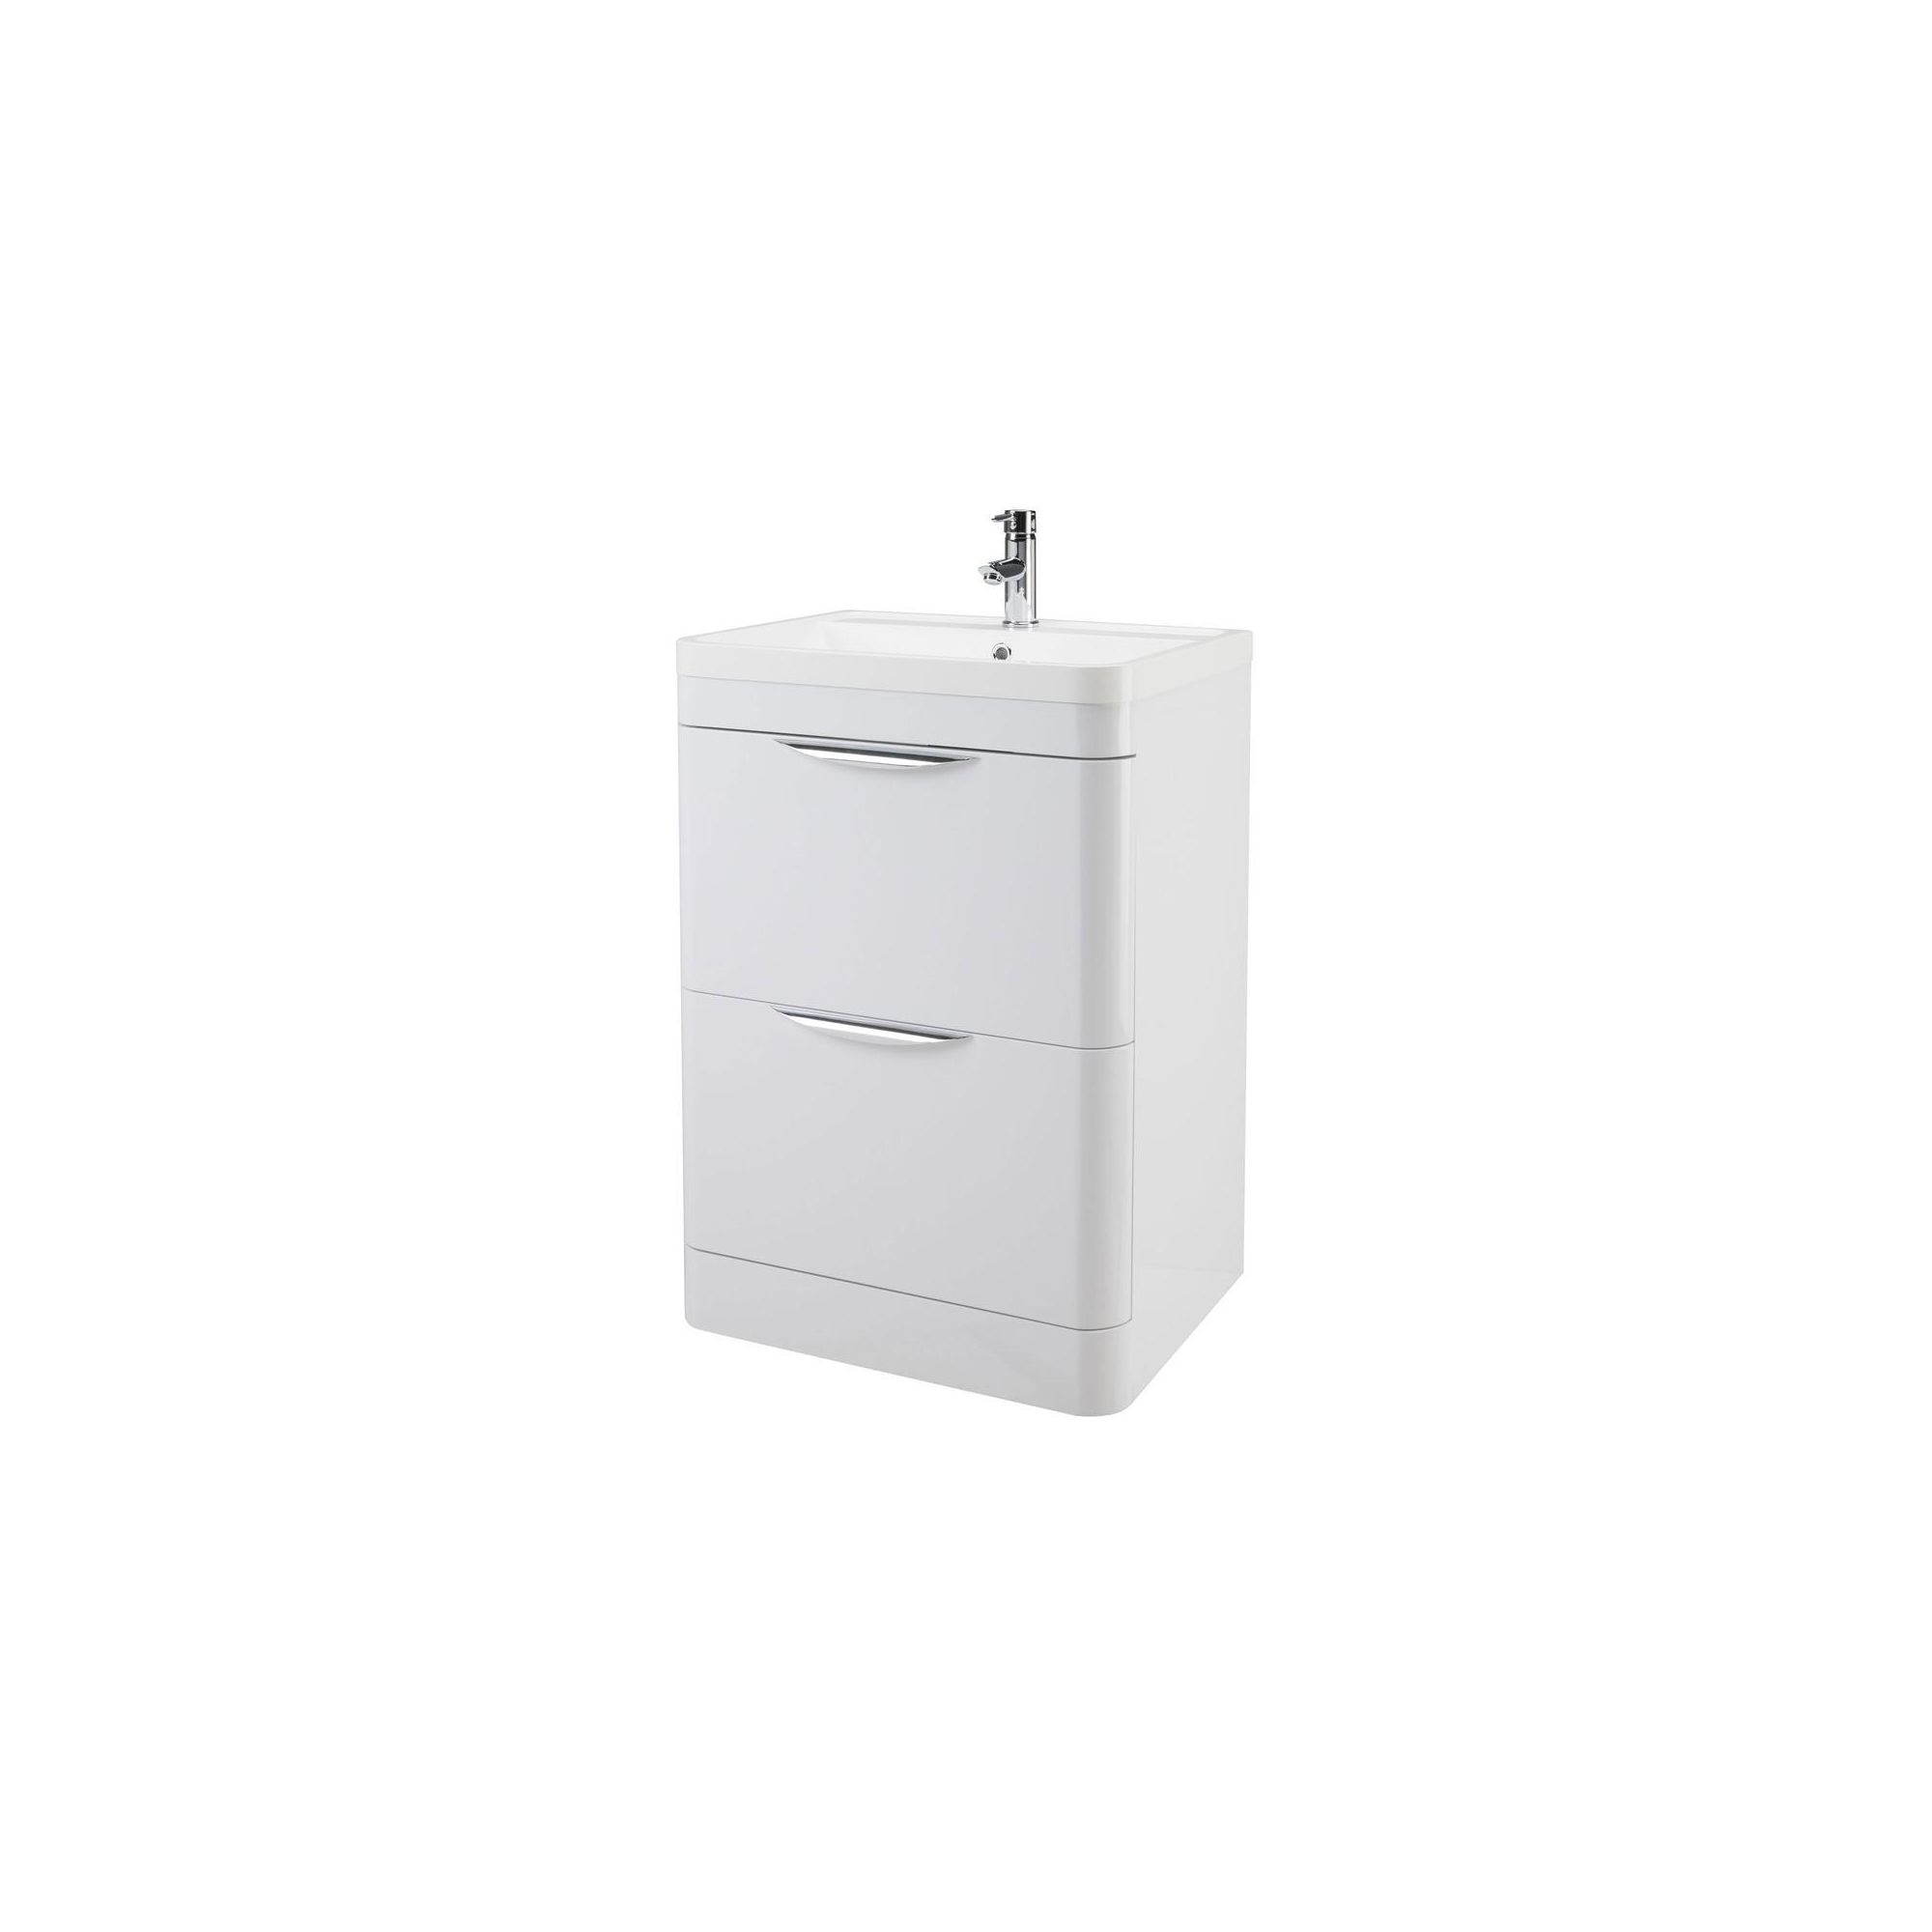 Premier Parade 600 Floor Standing 2 Drawer Basin and Cabinet